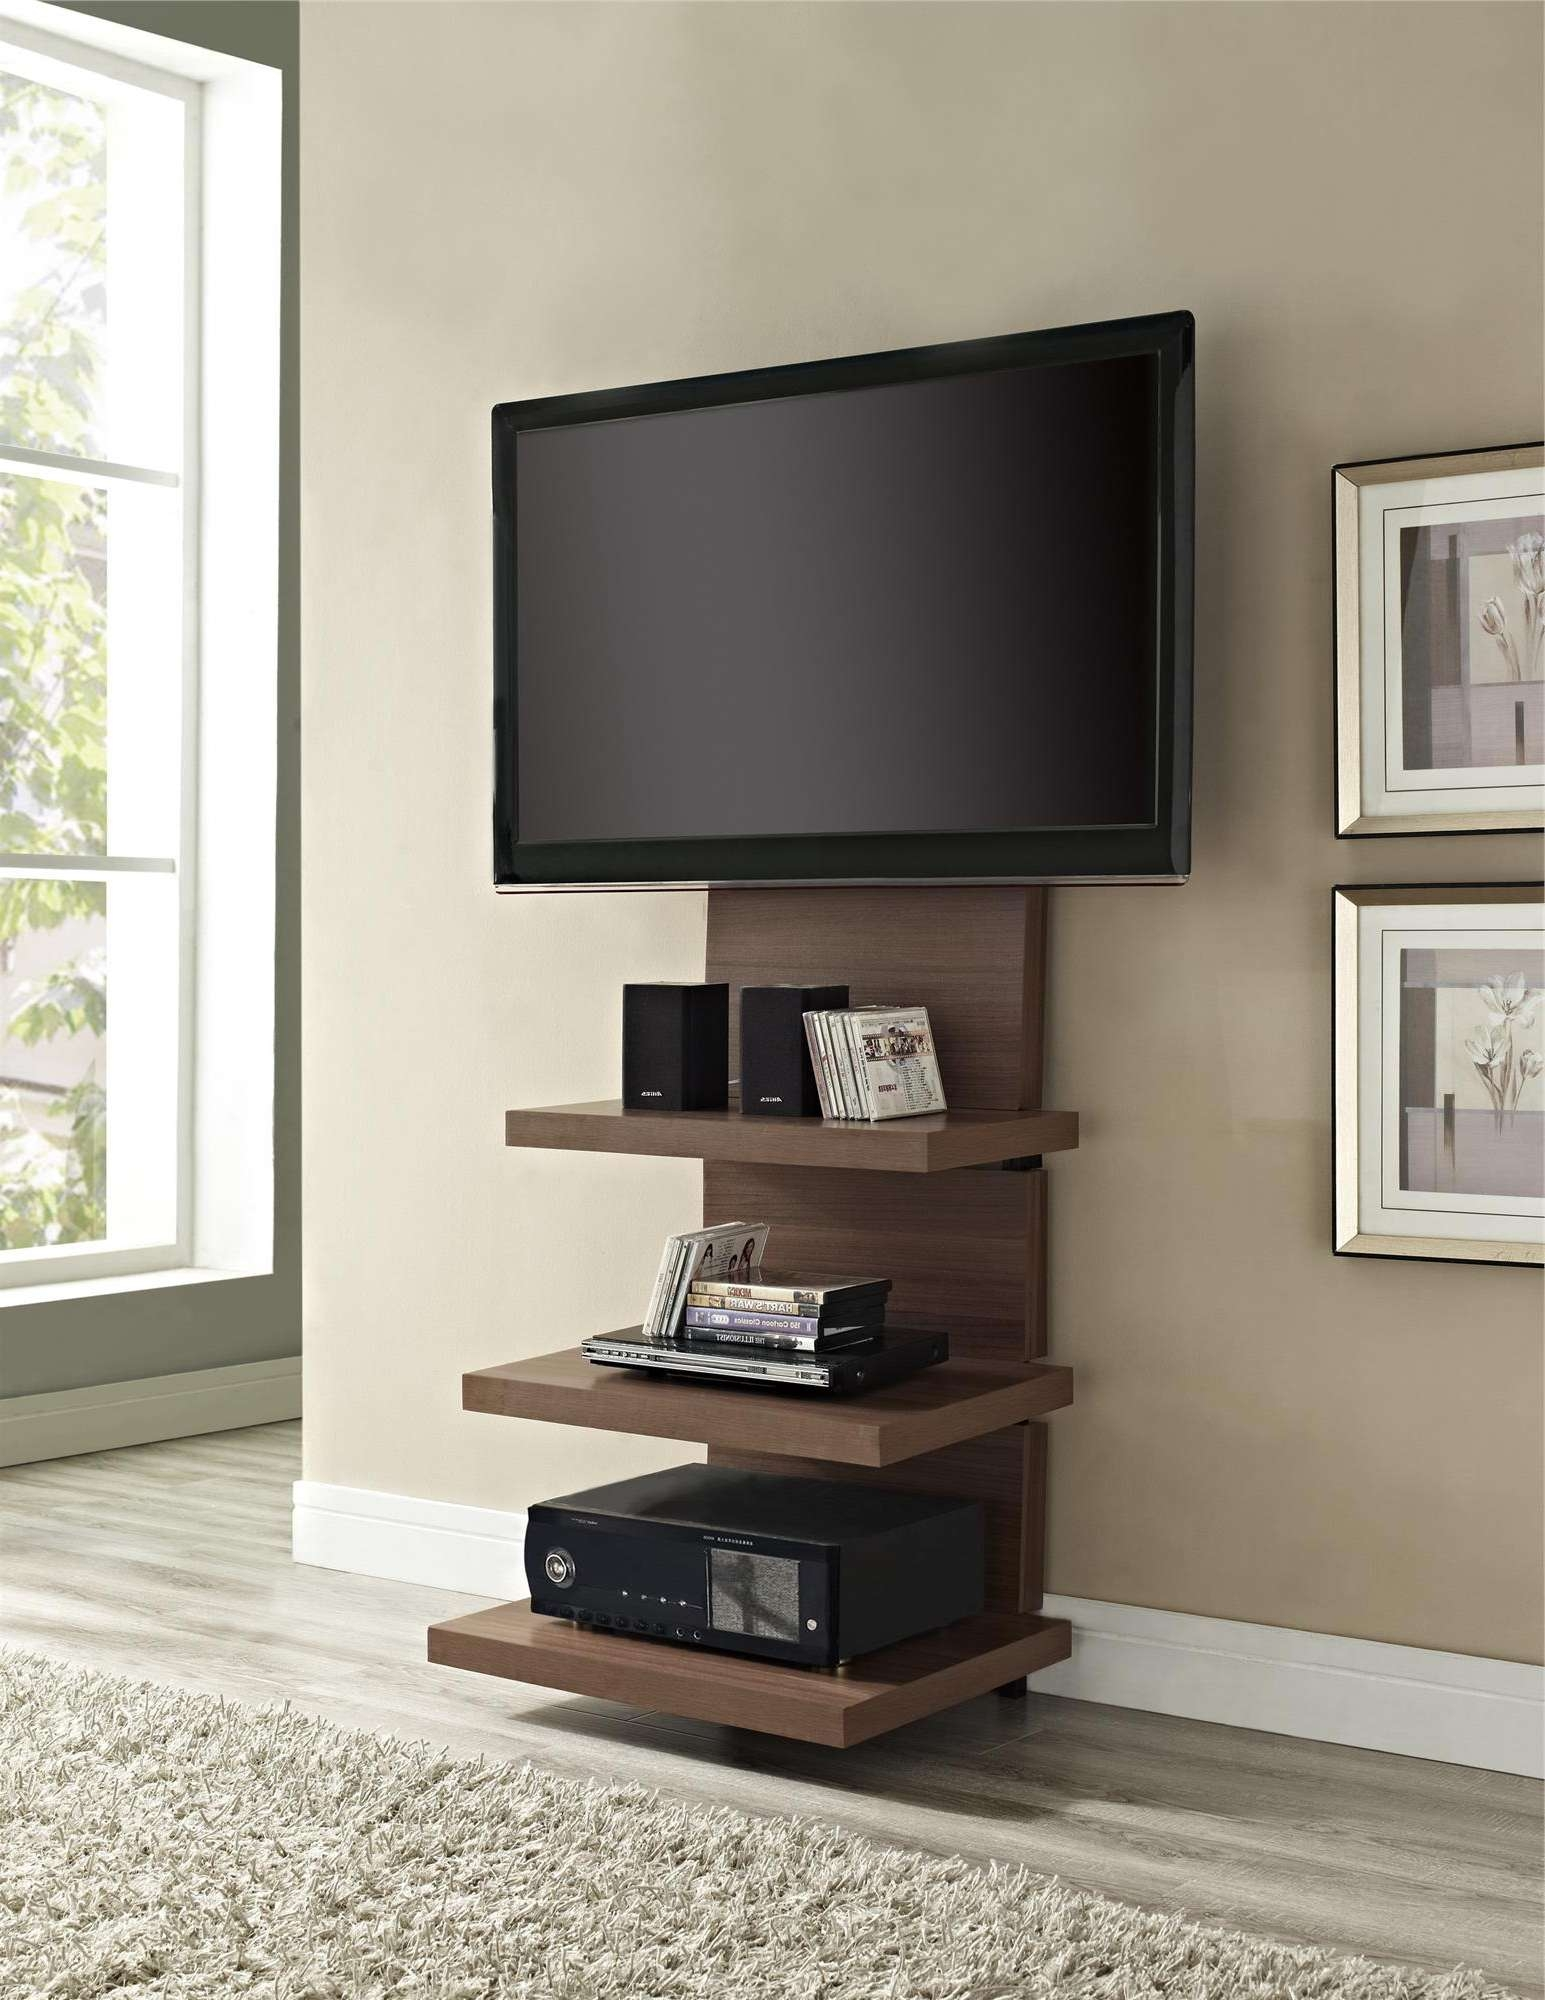 Tall Narrow Tv Stands For Bedroomsnarrow And Tall Tv Stand With With Regard To Tv Stands Tall Narrow (View 8 of 15)